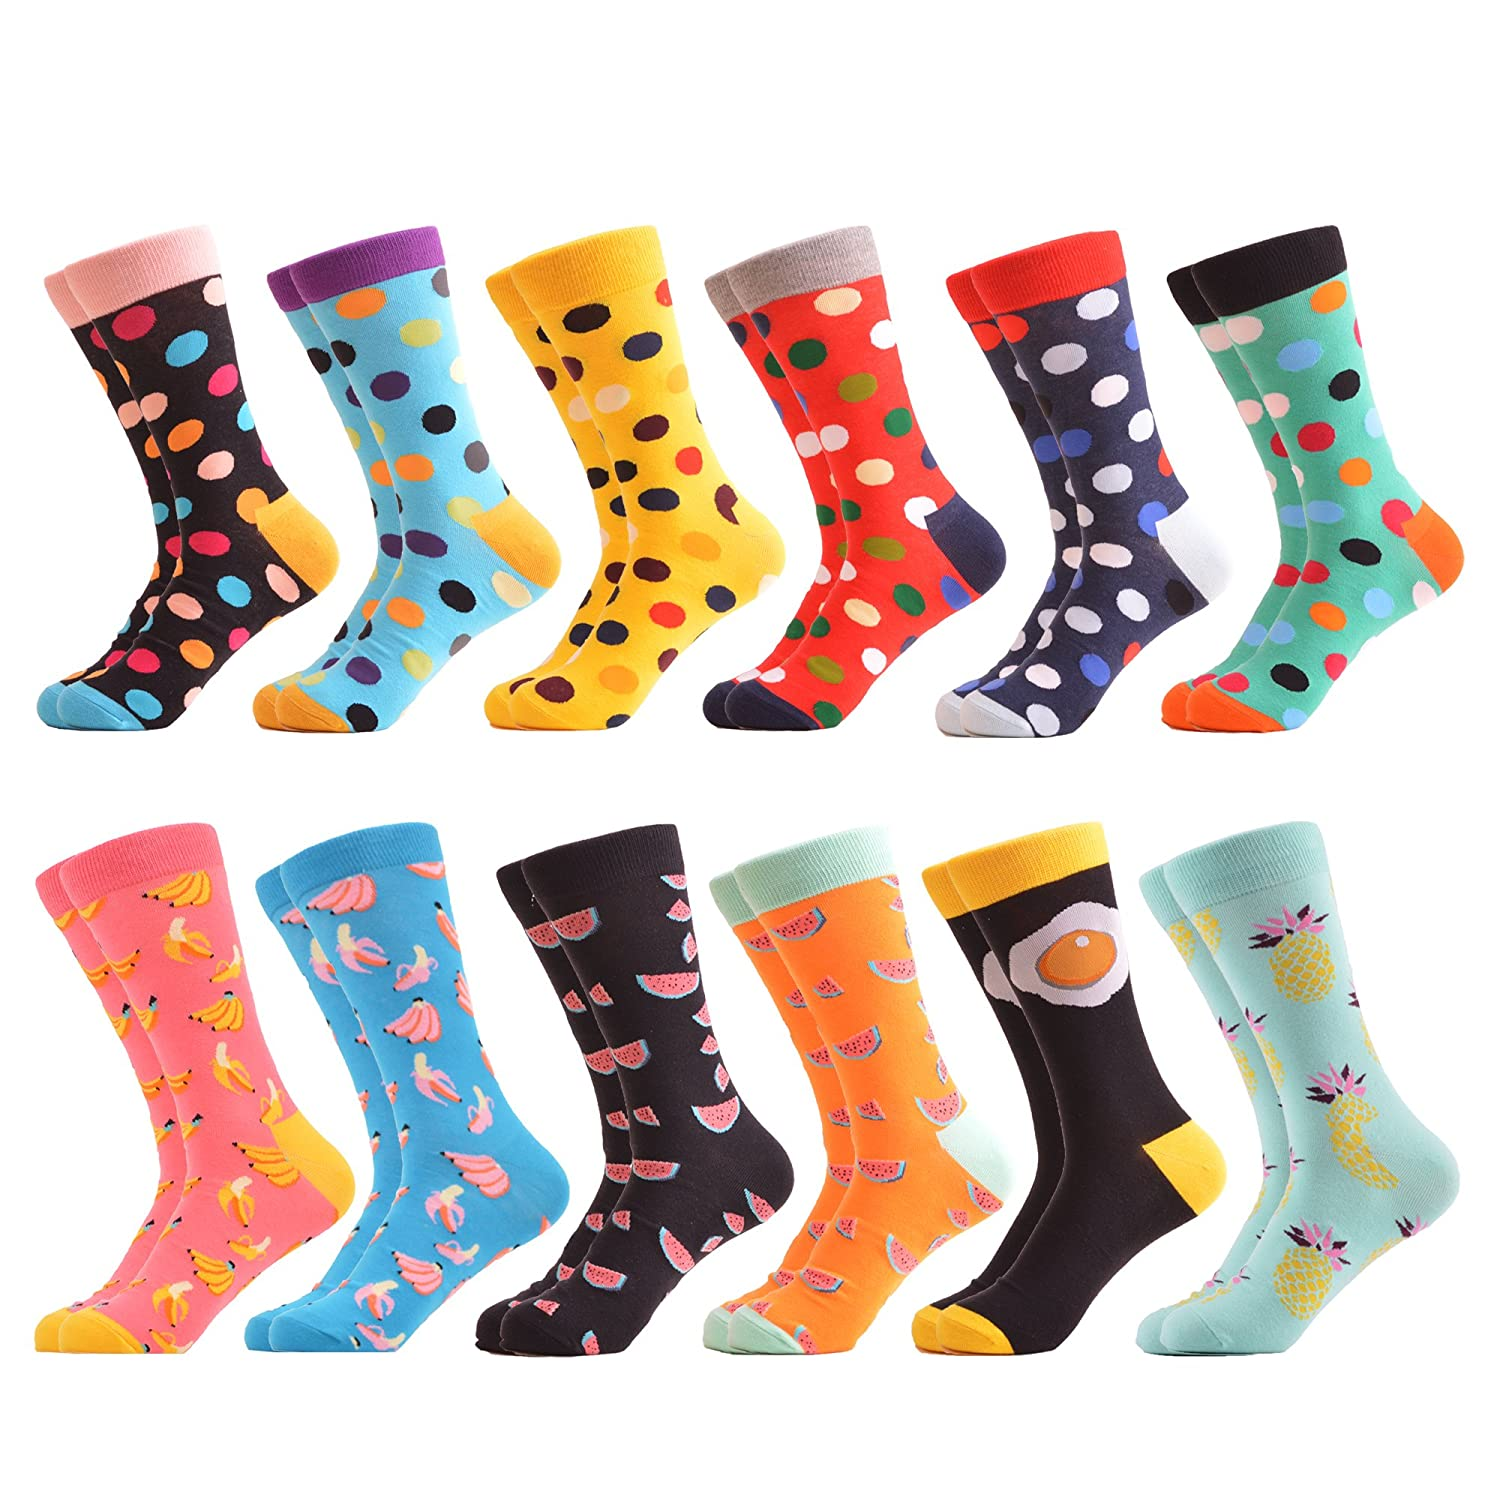 WeciBor Women's Funny Printed Casual Combed Cotton Crew Socks Packs C062-46